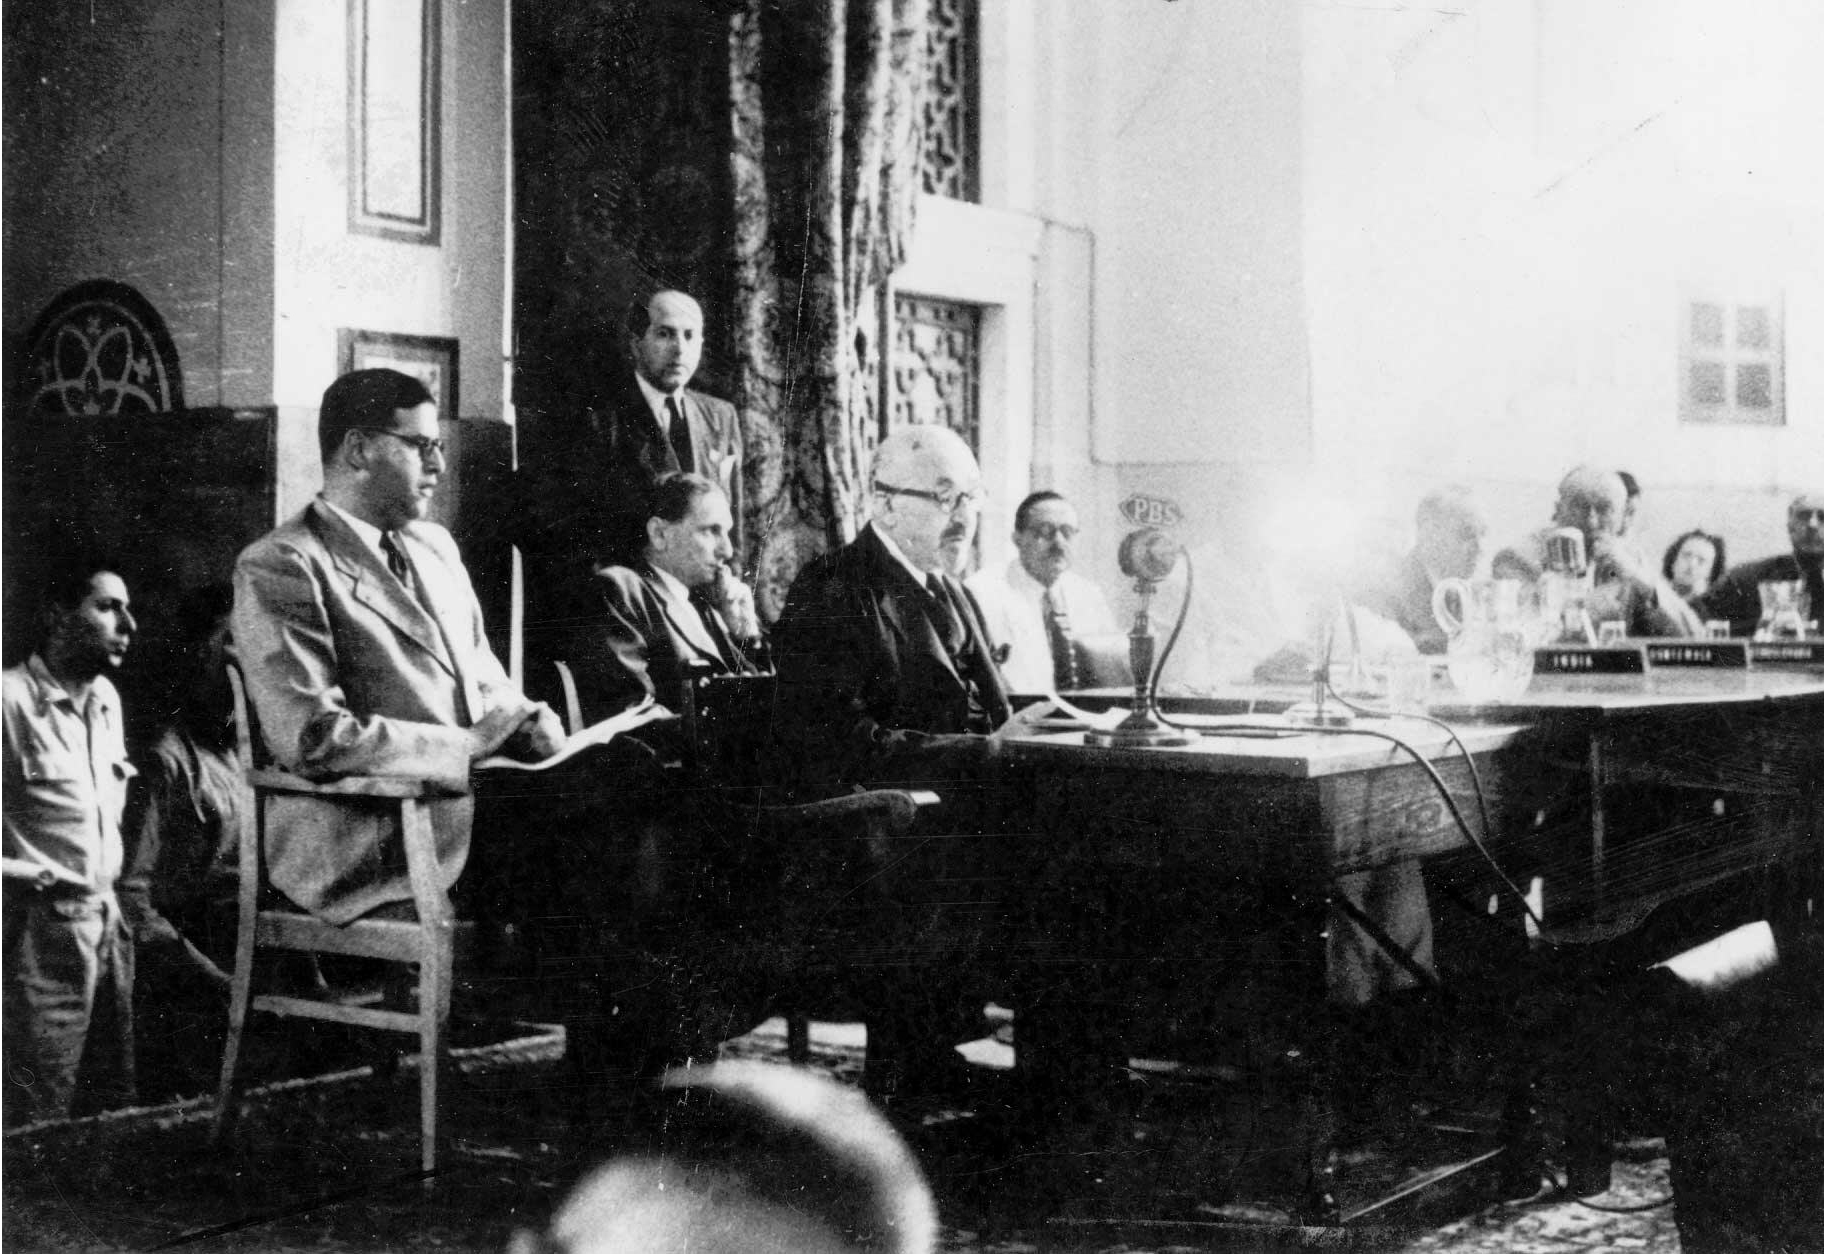 The photo shows Chaim Weizmann giving his testimony to UNSCOP on July 8, 1947